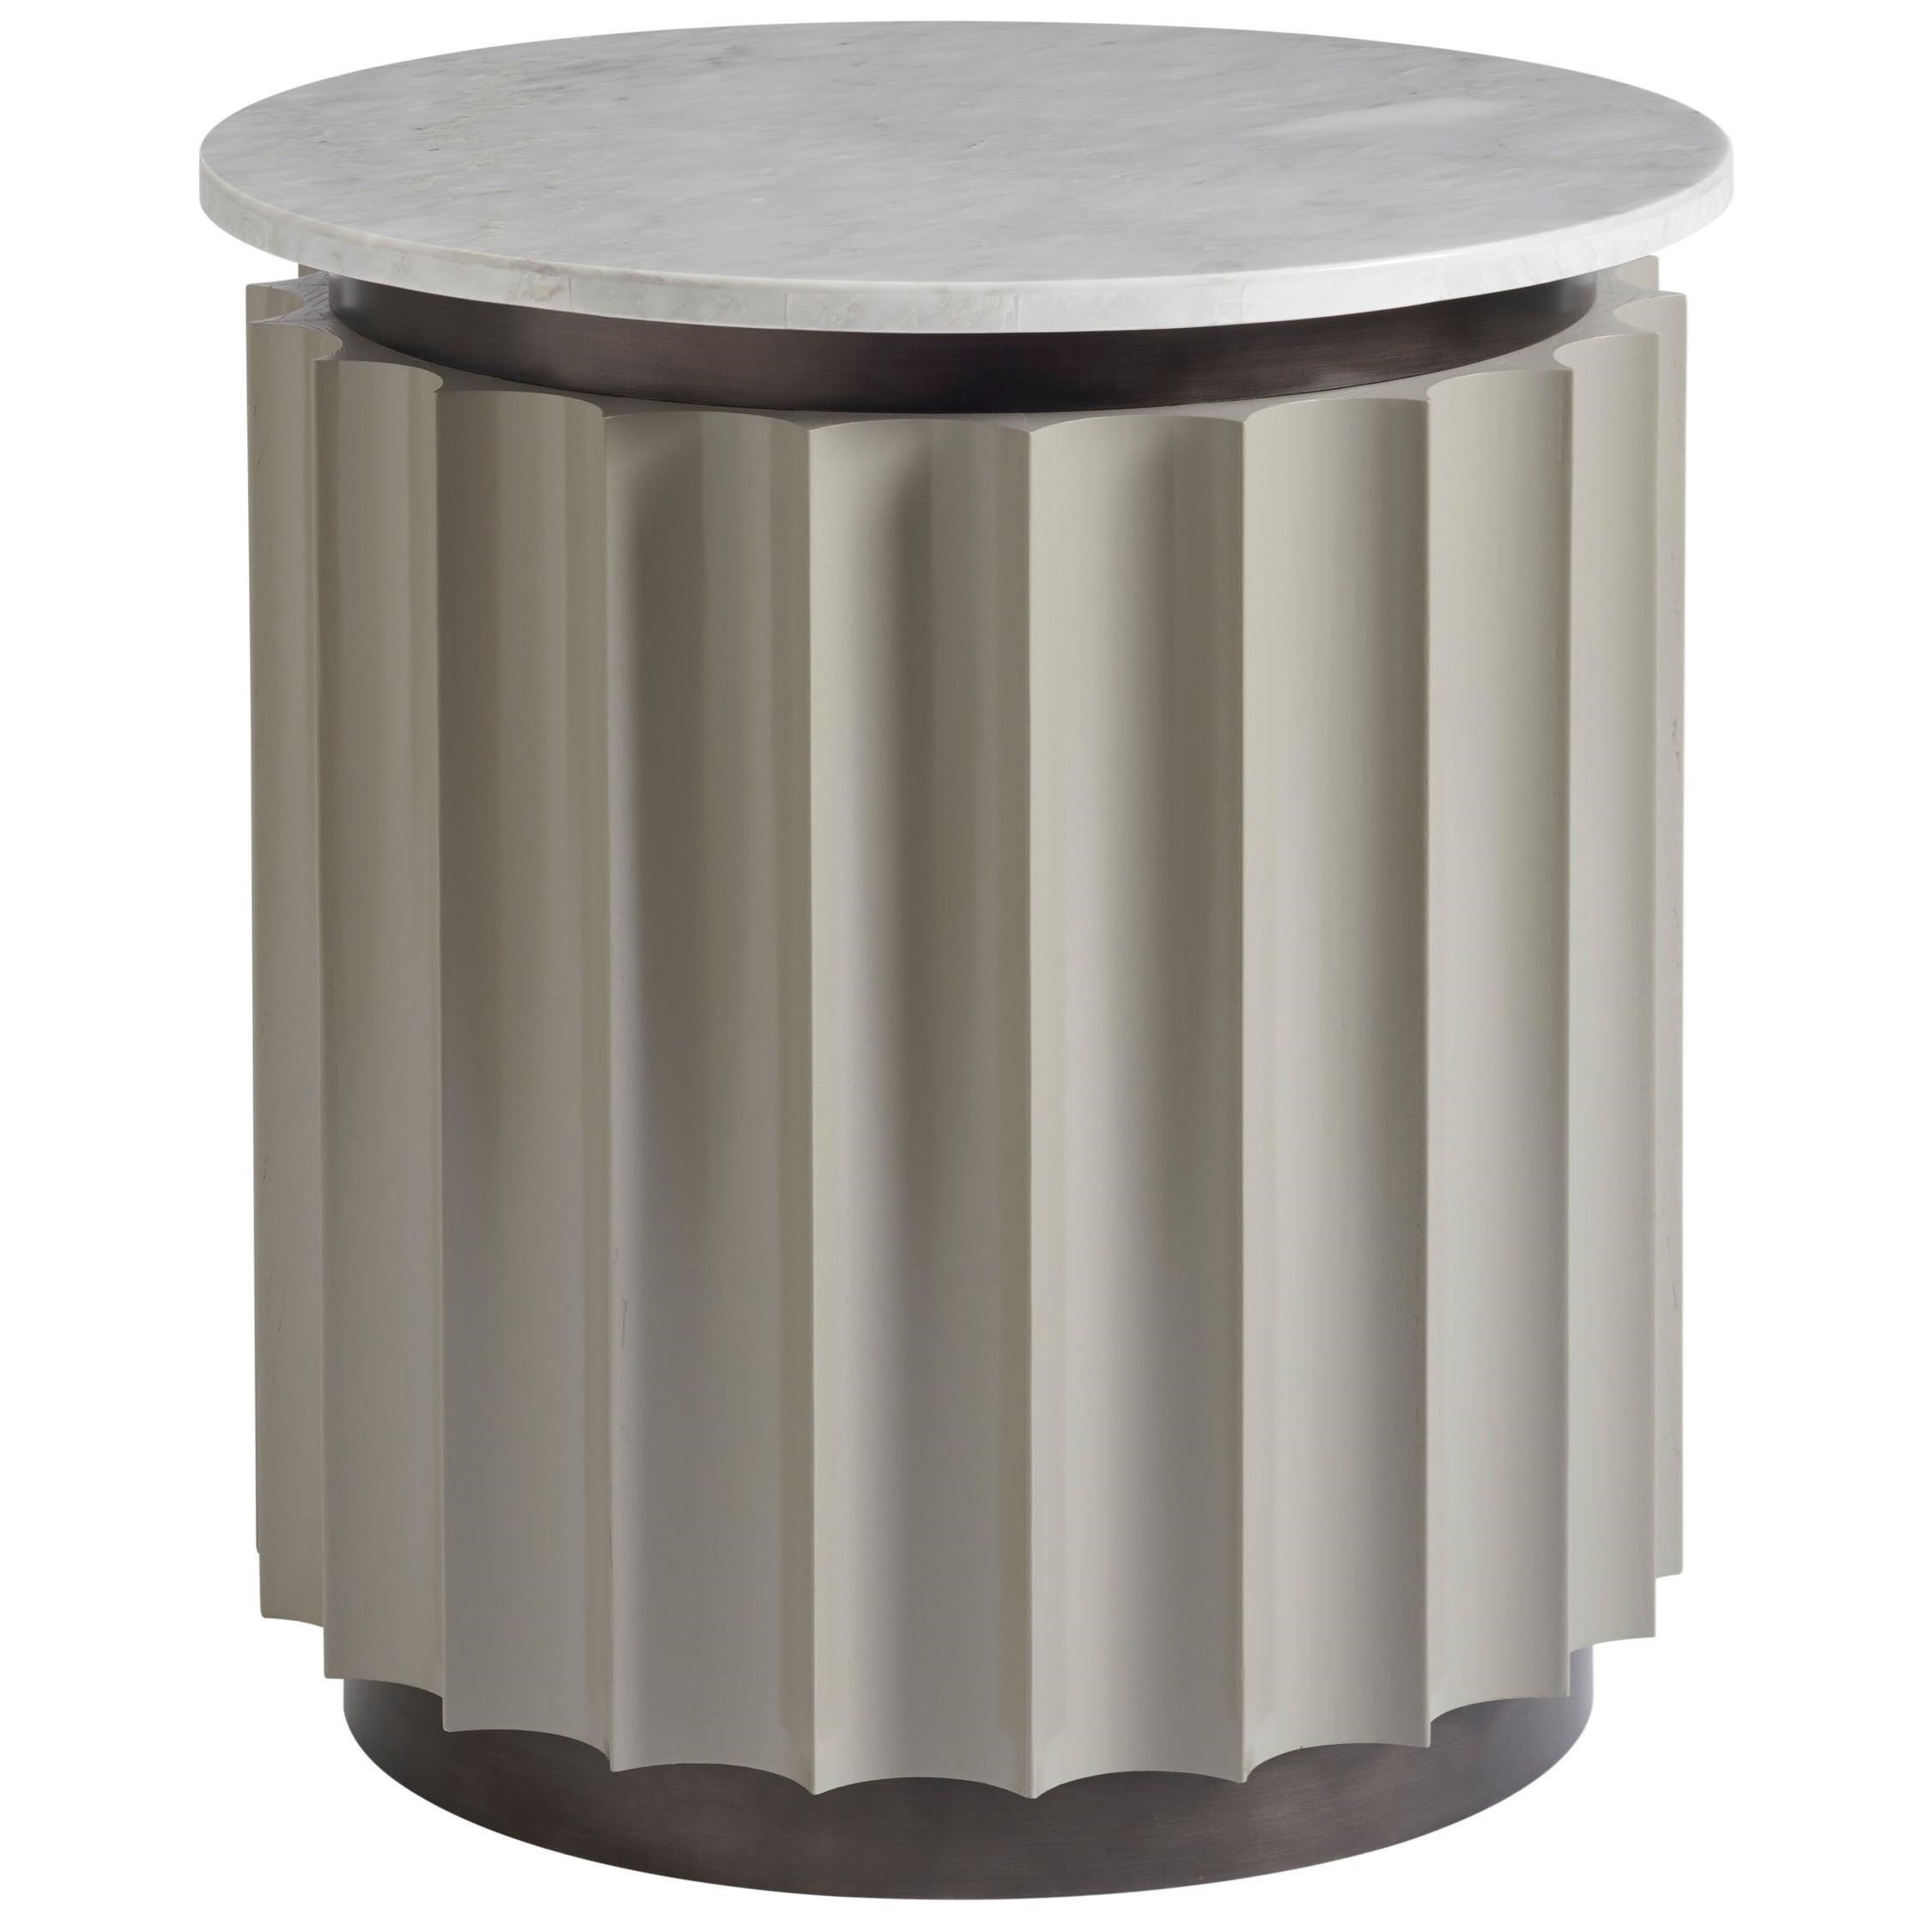 Nina Magon 941 Rockwell Round End Table by Universal at Zak's Home